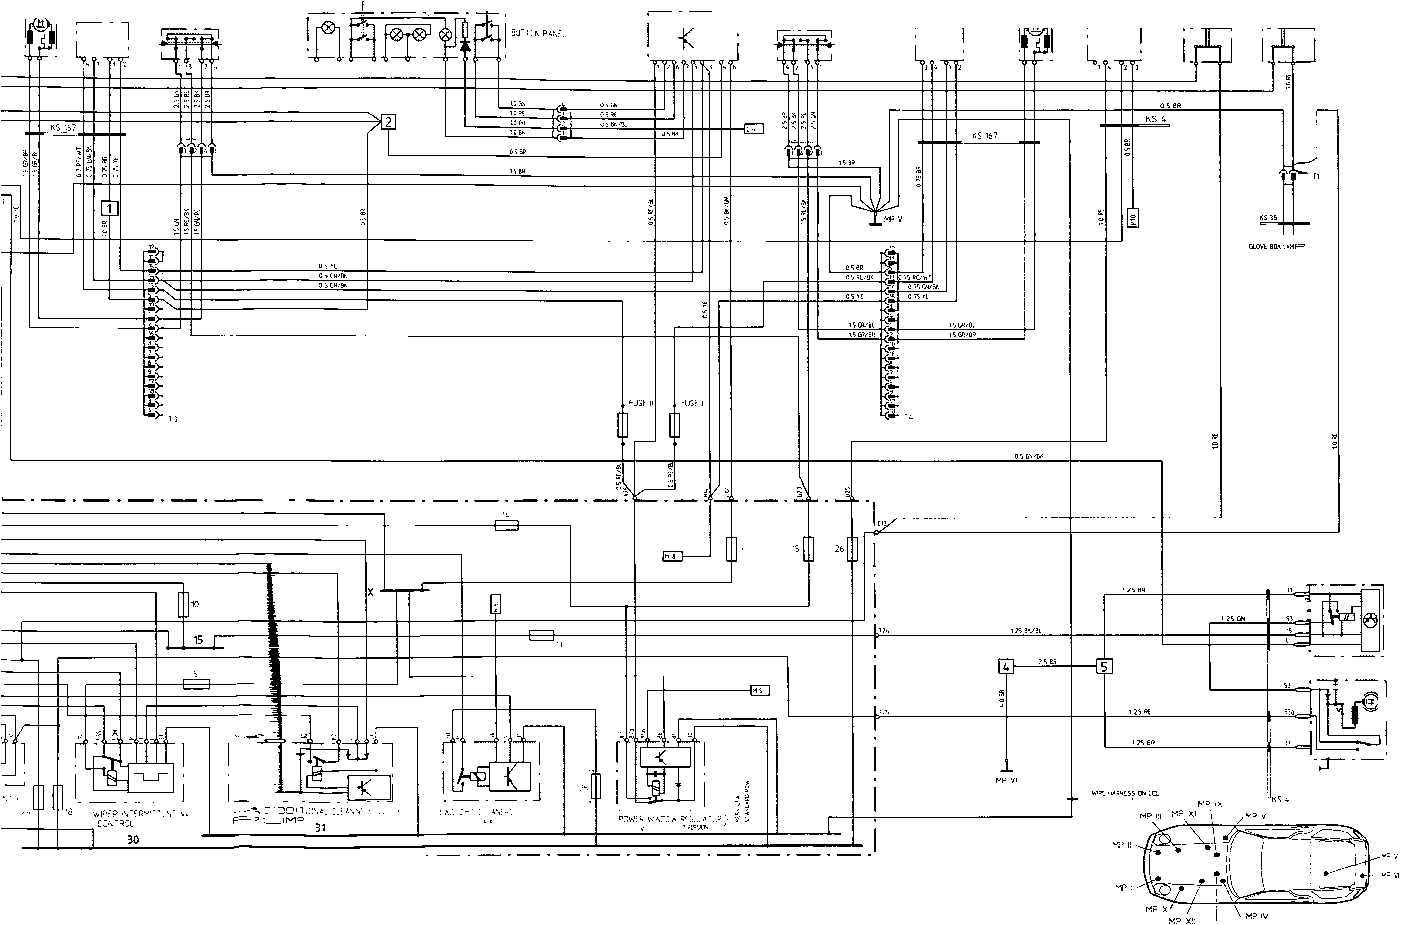 porsche 928 s4 parts diagrams wiring diagram database wiring diagram iype 928 s model 88 page